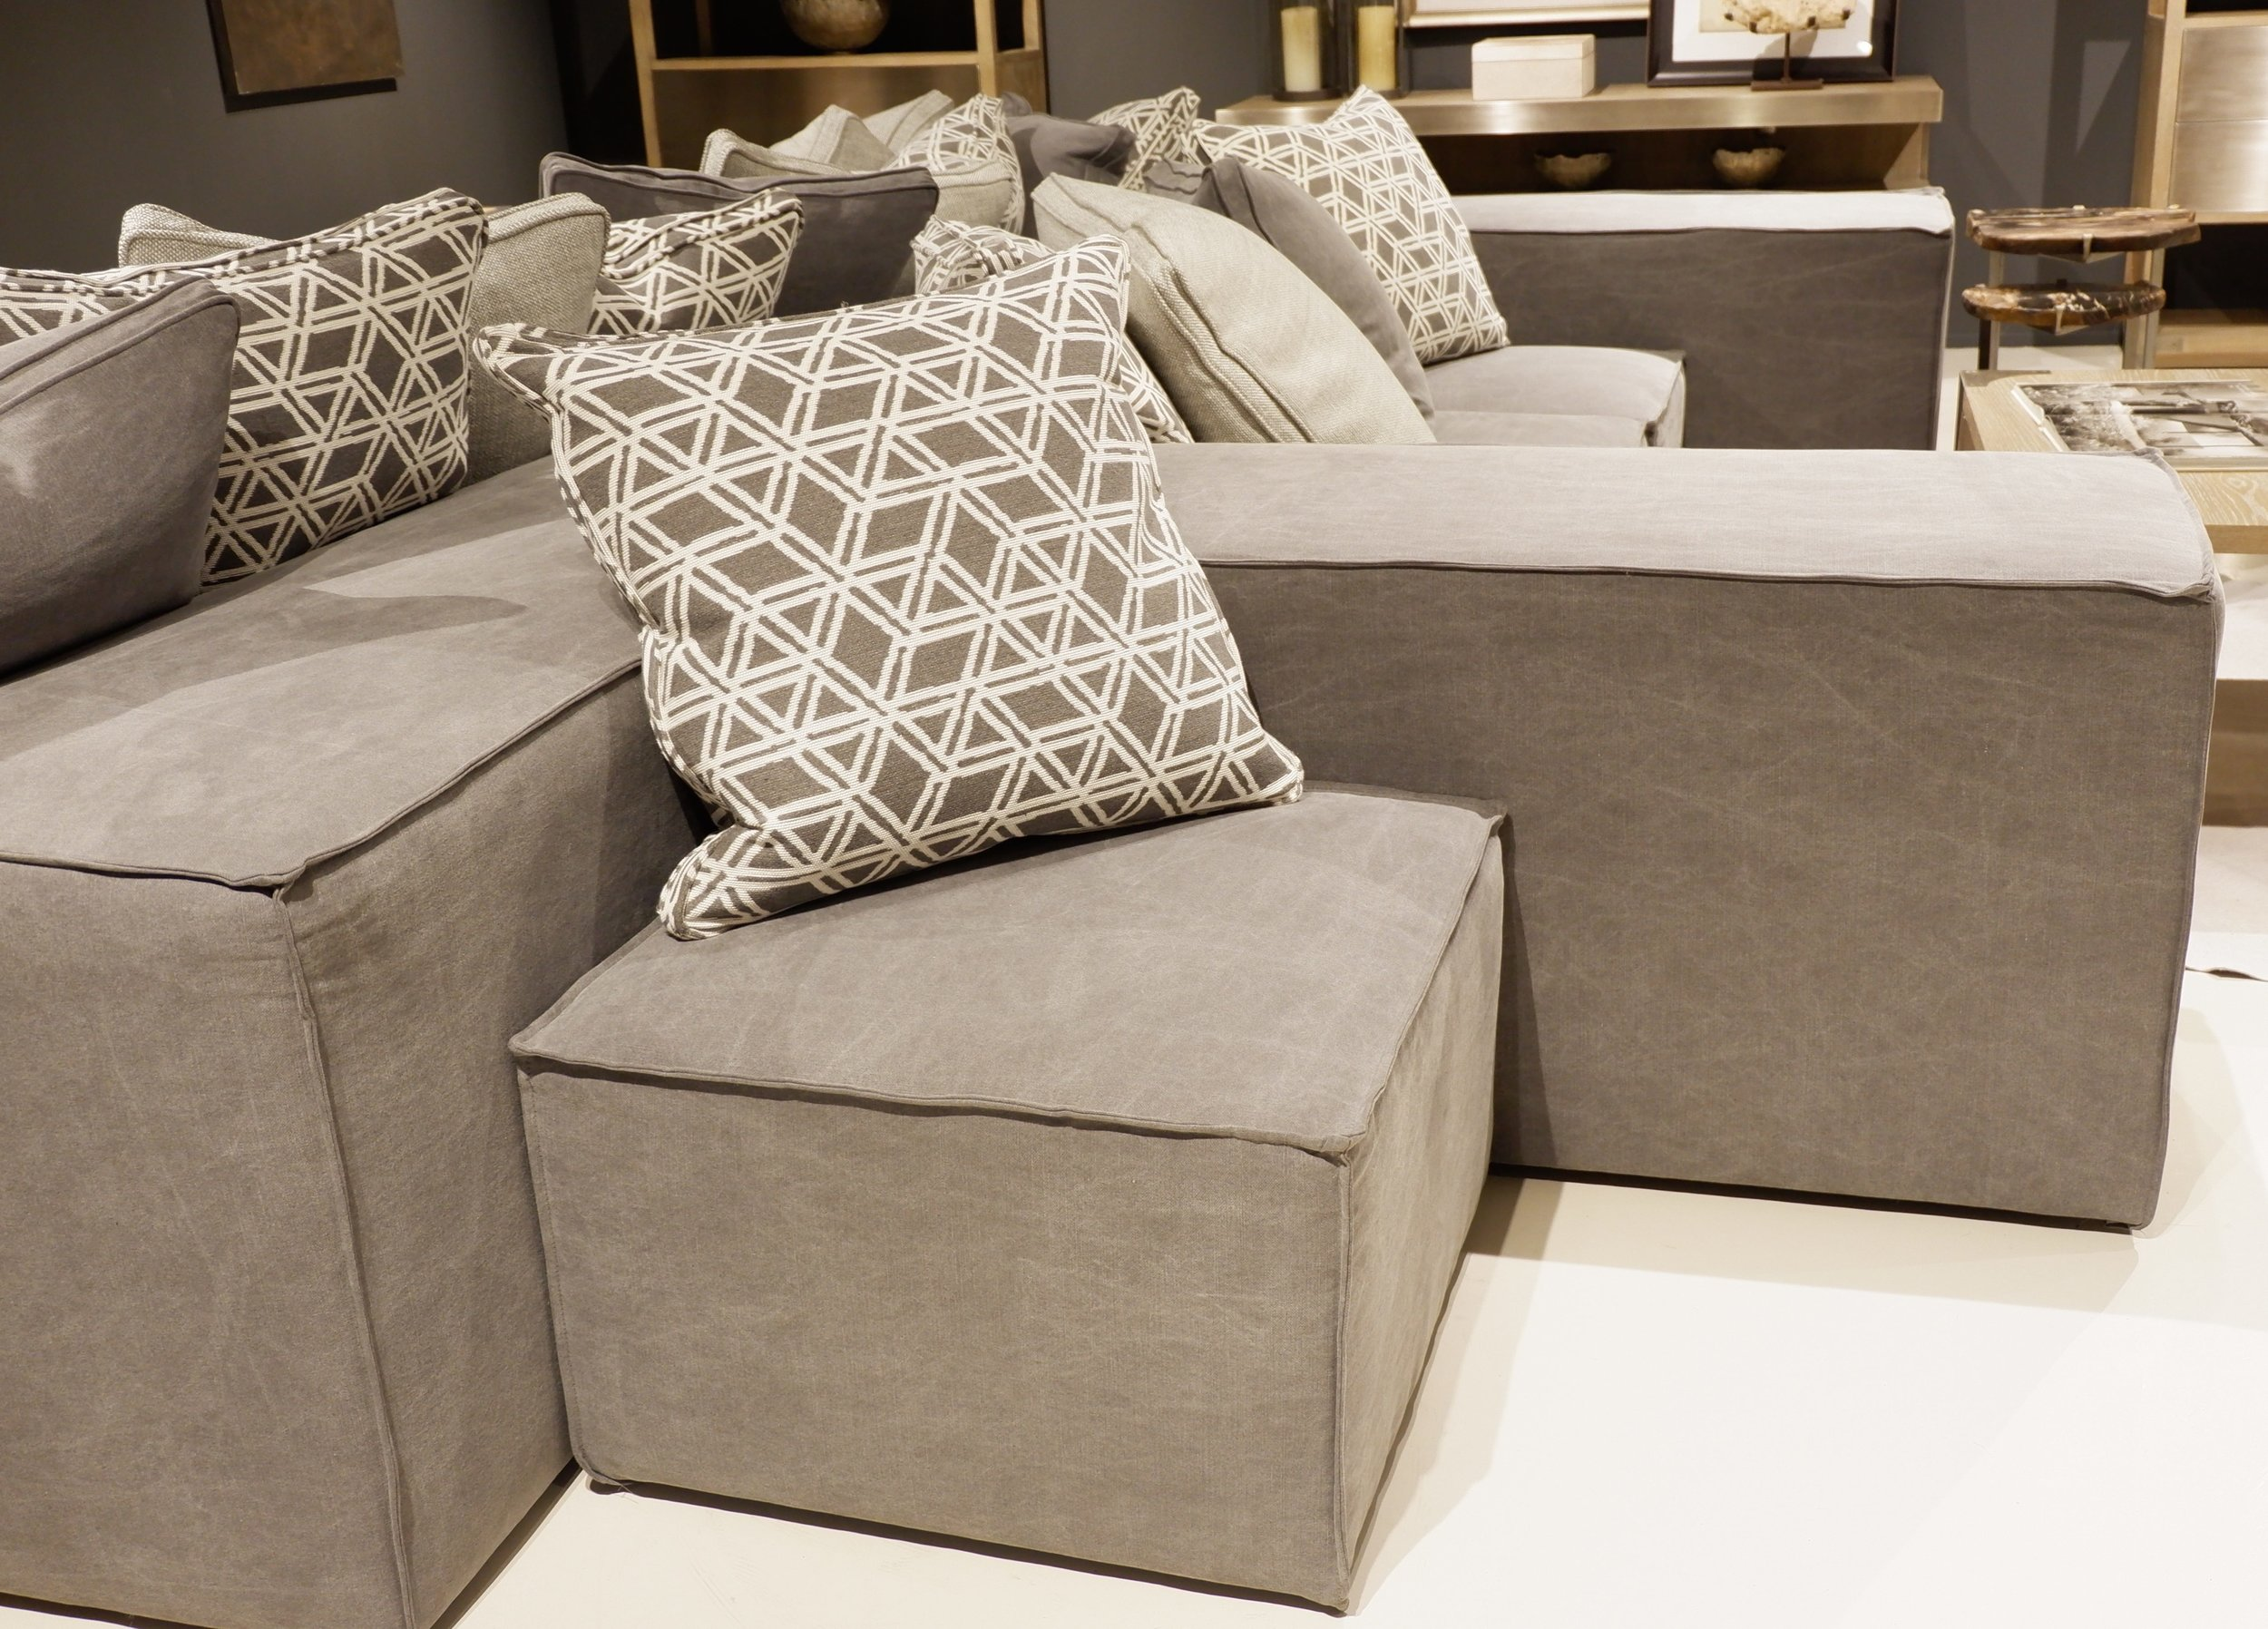 Format seating collection, Bernhardt